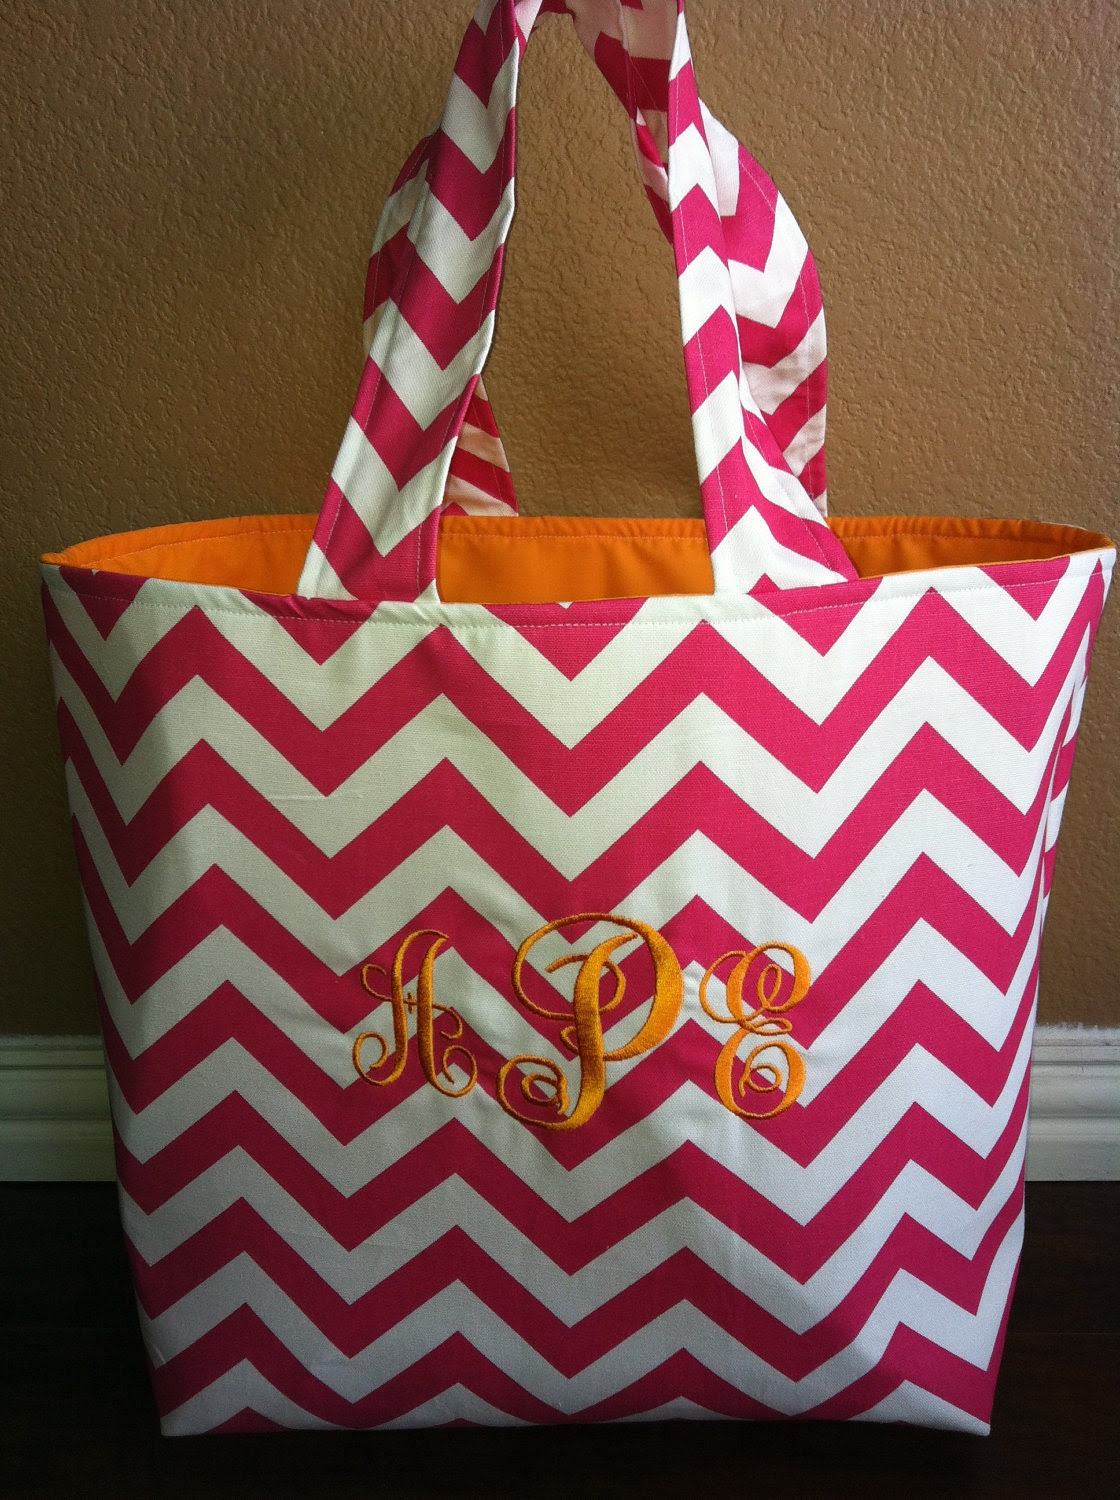 Candy Pink and White Large Monogramed Chevron Tote